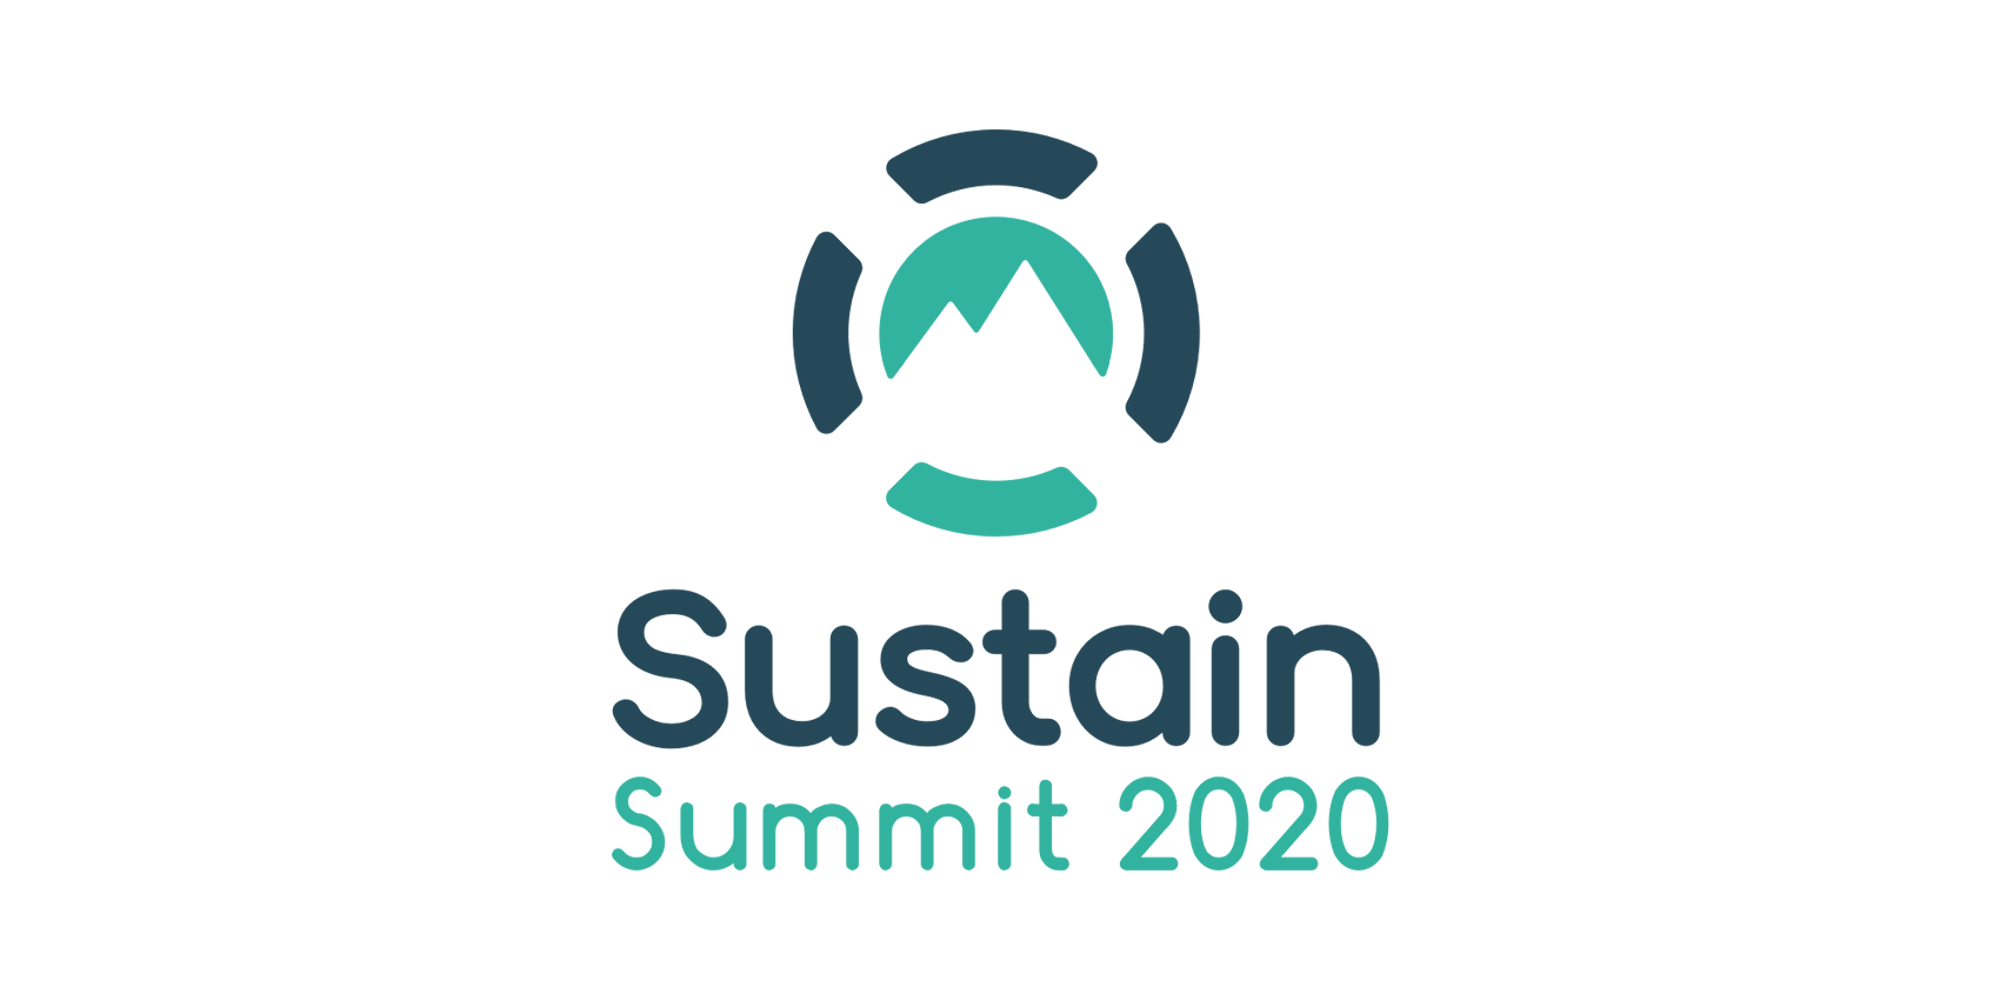 Sustain Summit 2020